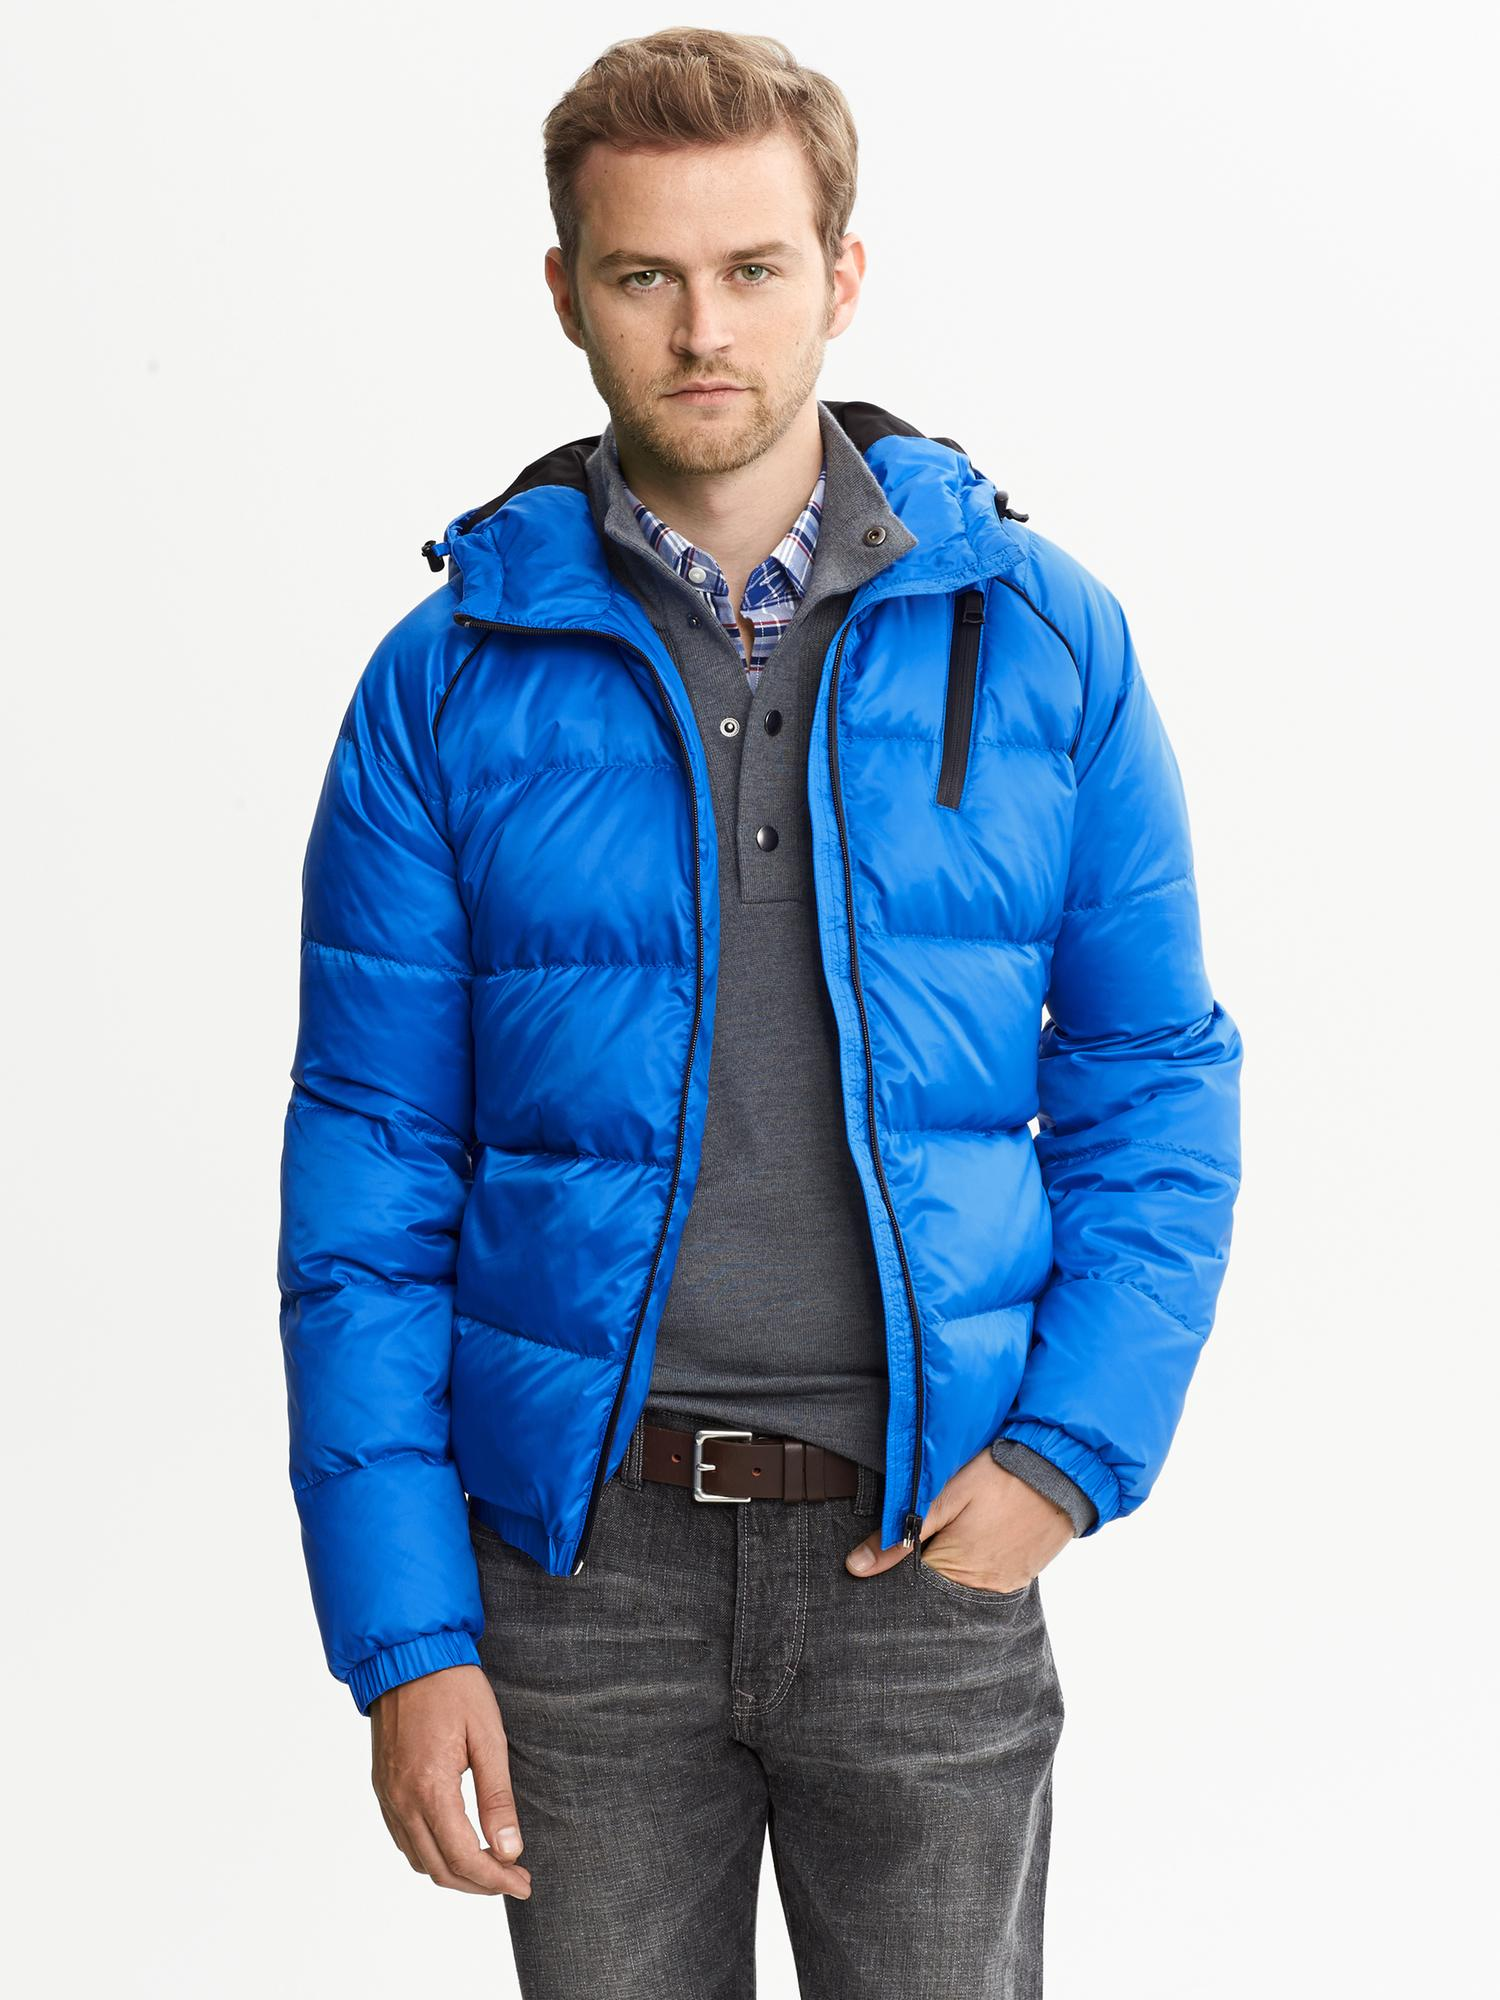 Banana Republic Down Puffer Jacket Damselfish Blue For Men